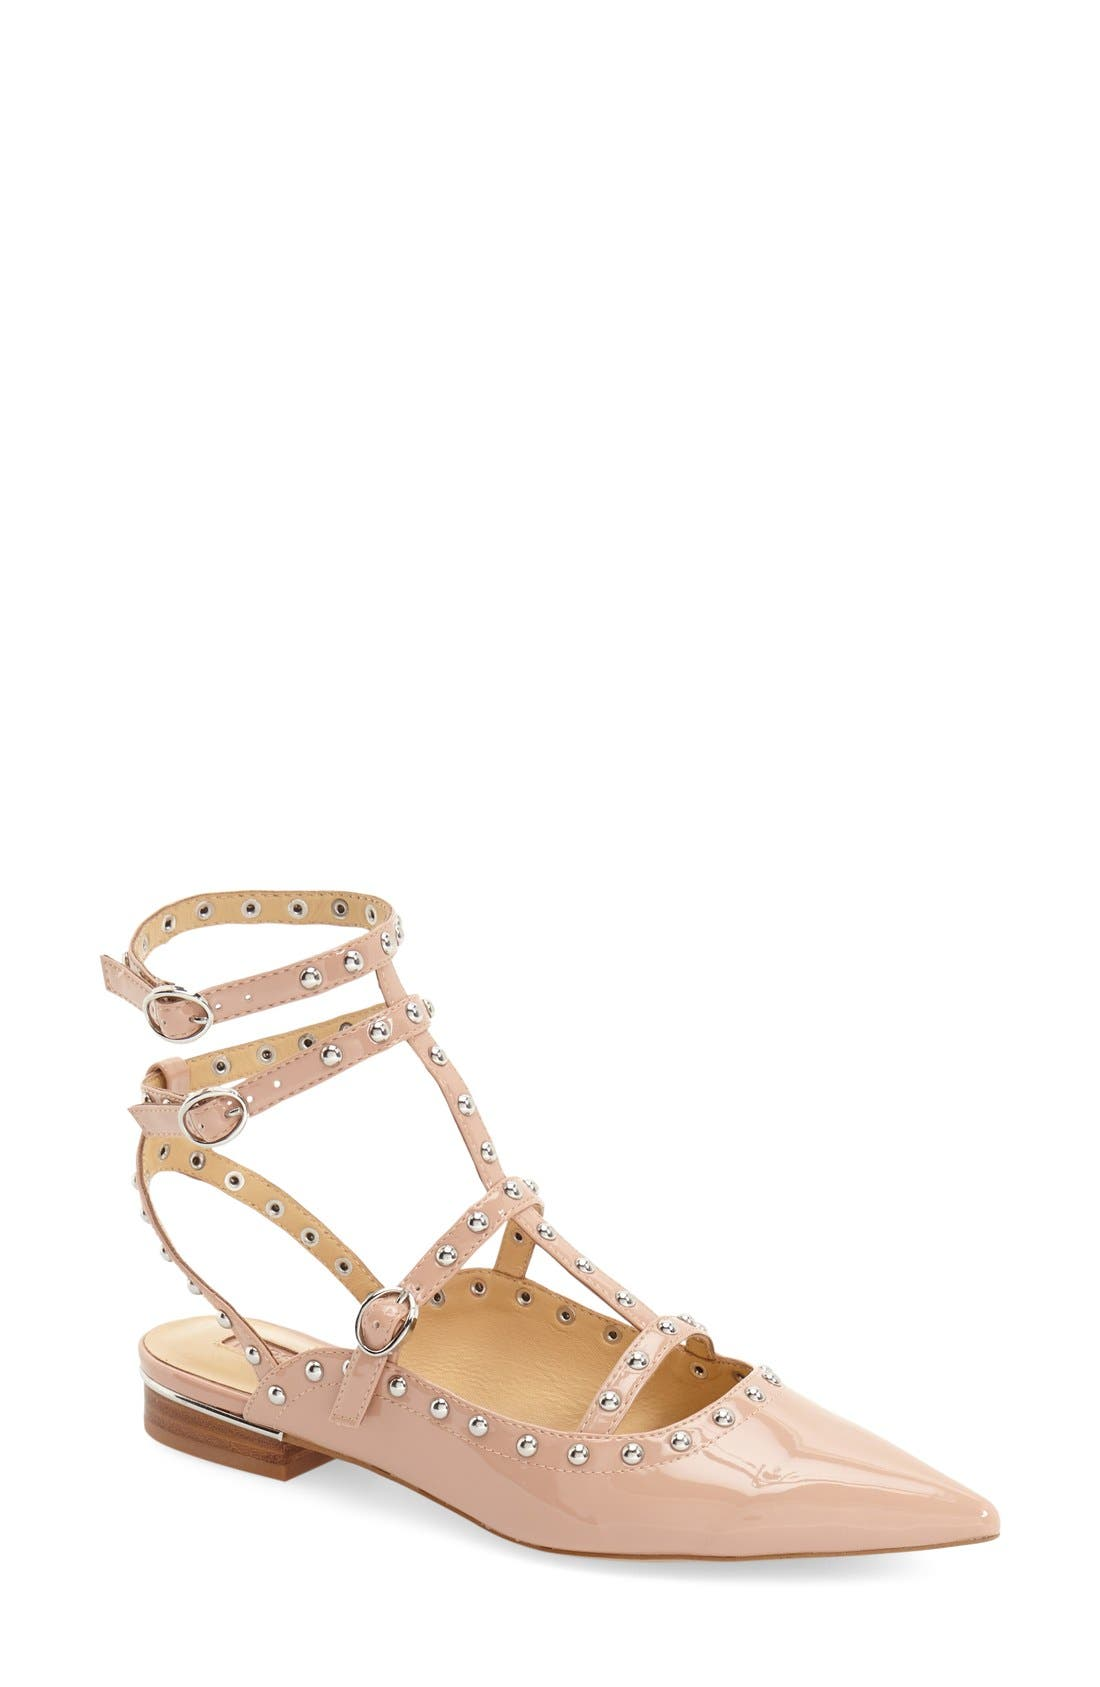 Alternate Image 1 Selected - Topshop 'Kate' Pointy Toe Flat (Women)